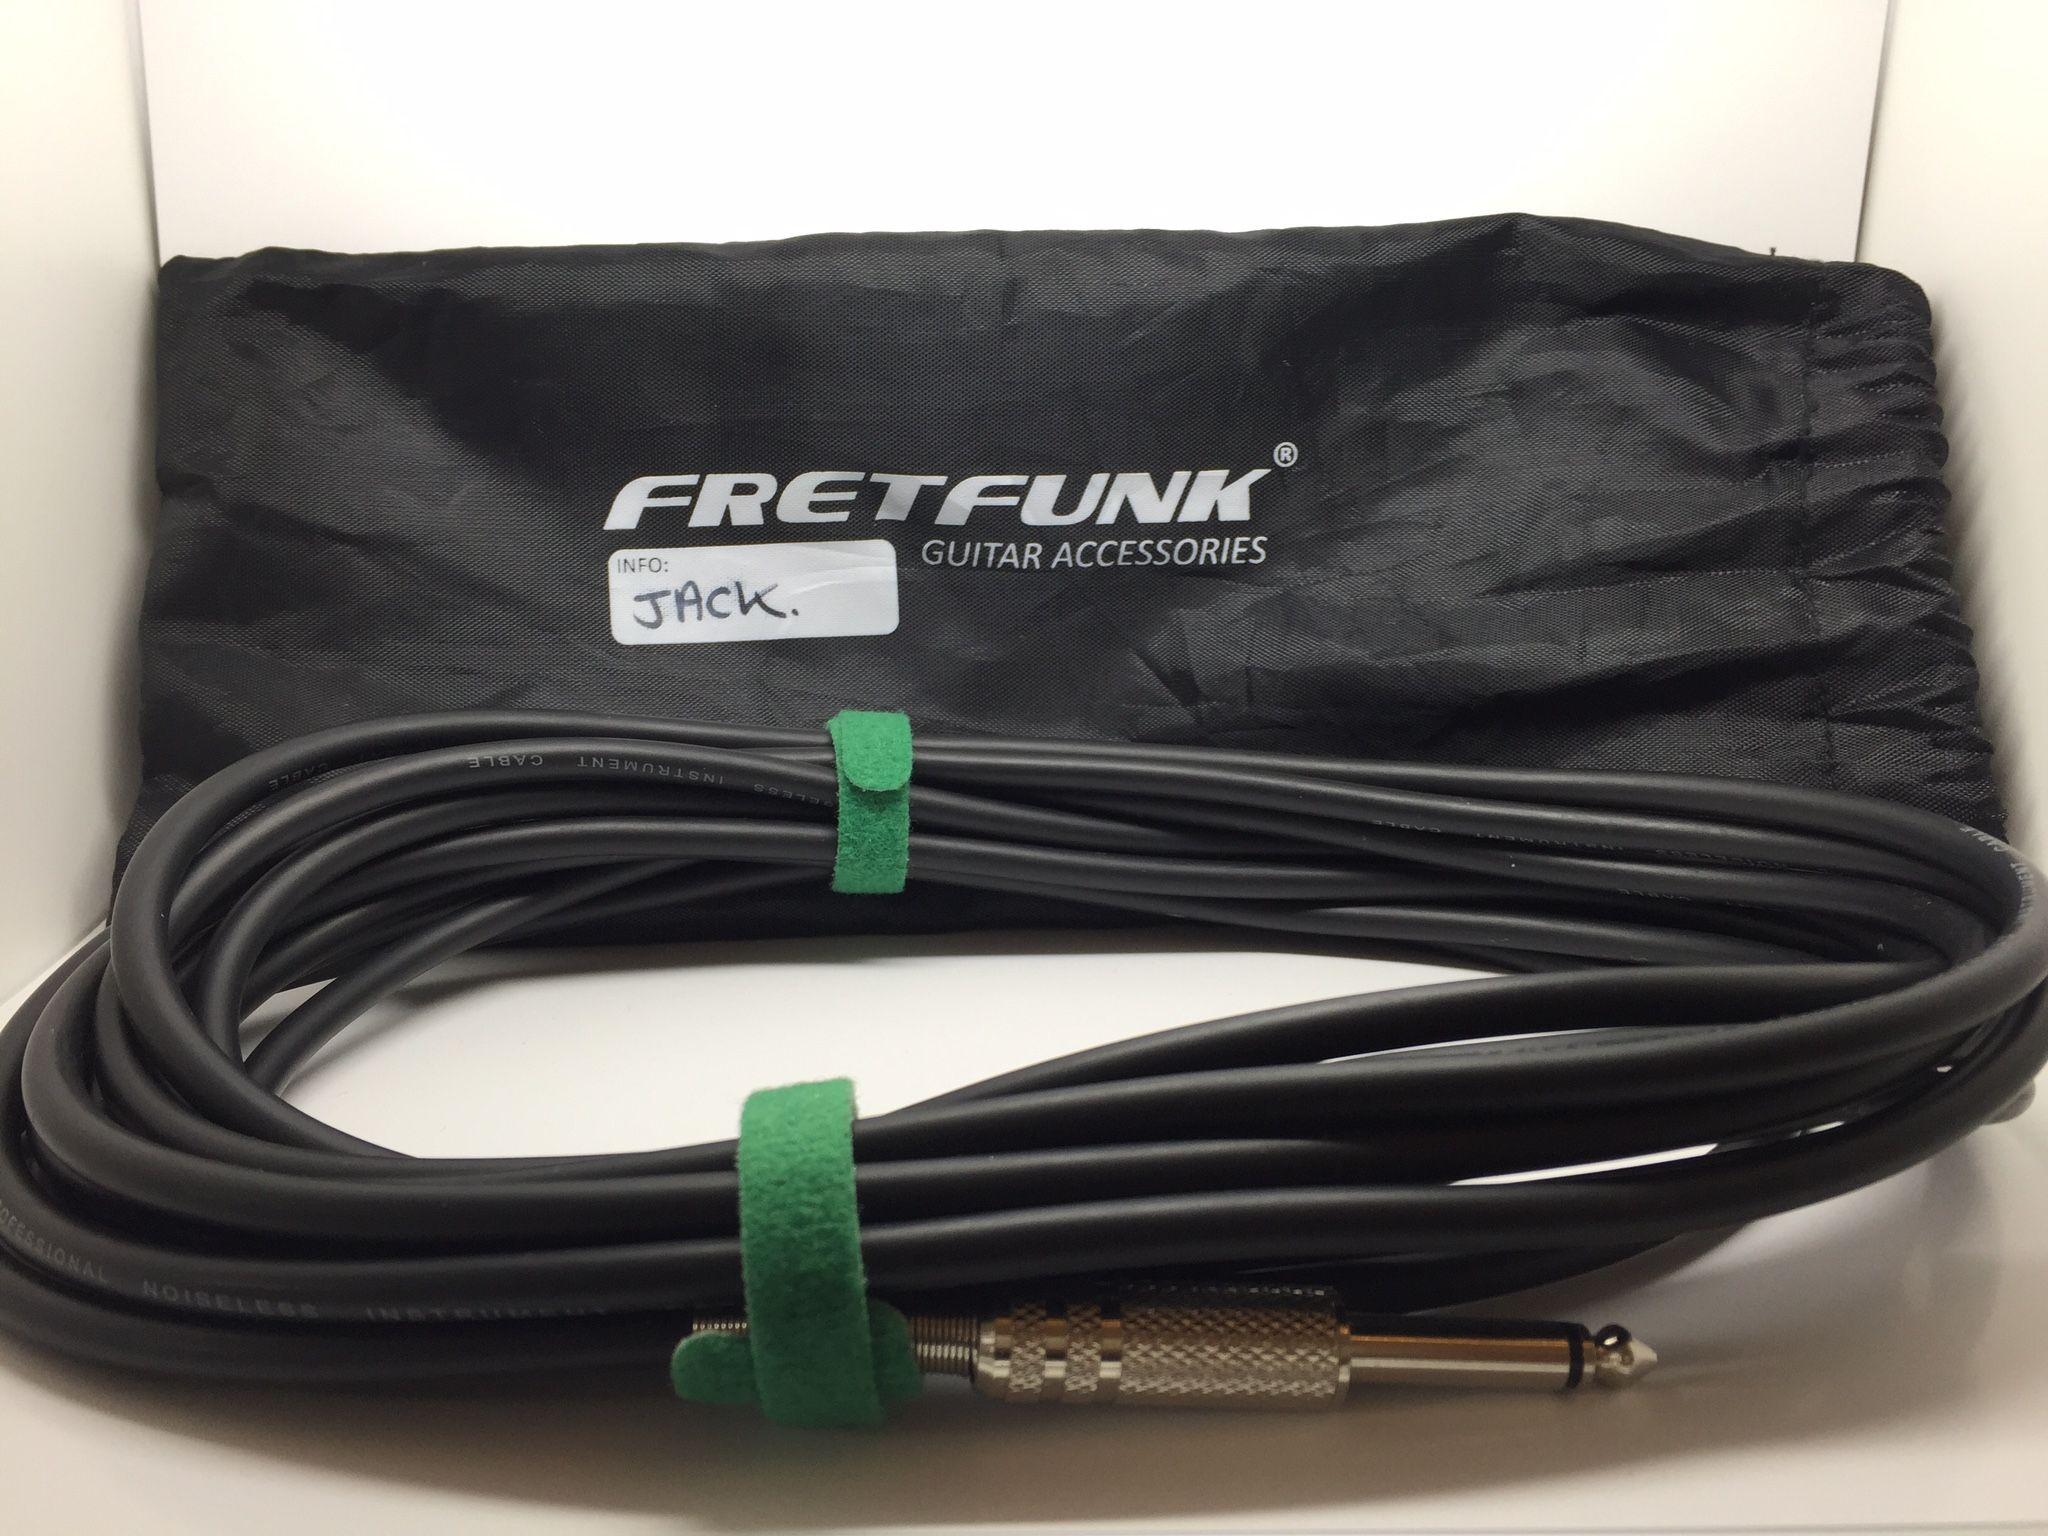 Fretfunk Cable Bags and Cable Ties - protect your cables, 3 pack available at www.fretfunk.co.uk